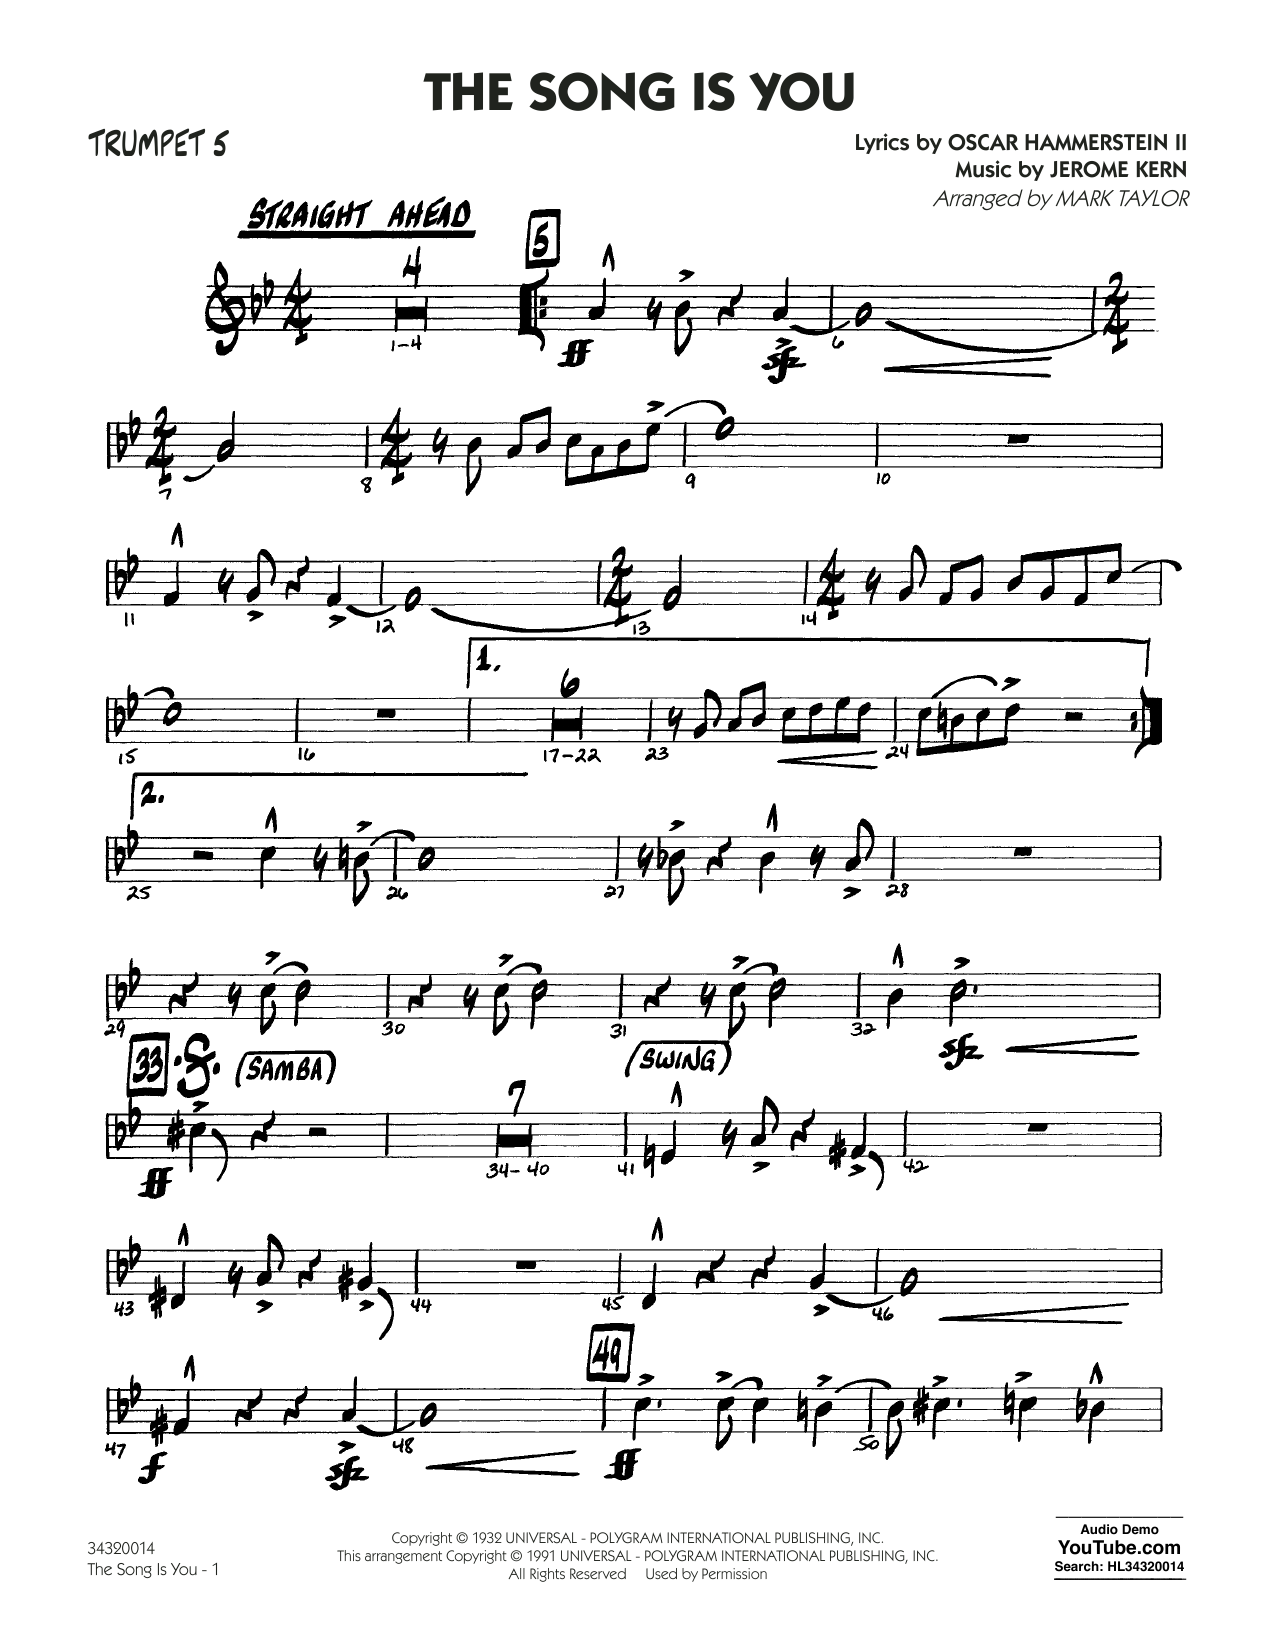 Oscar Hammerstein II - The Song Is You - Trumpet 5